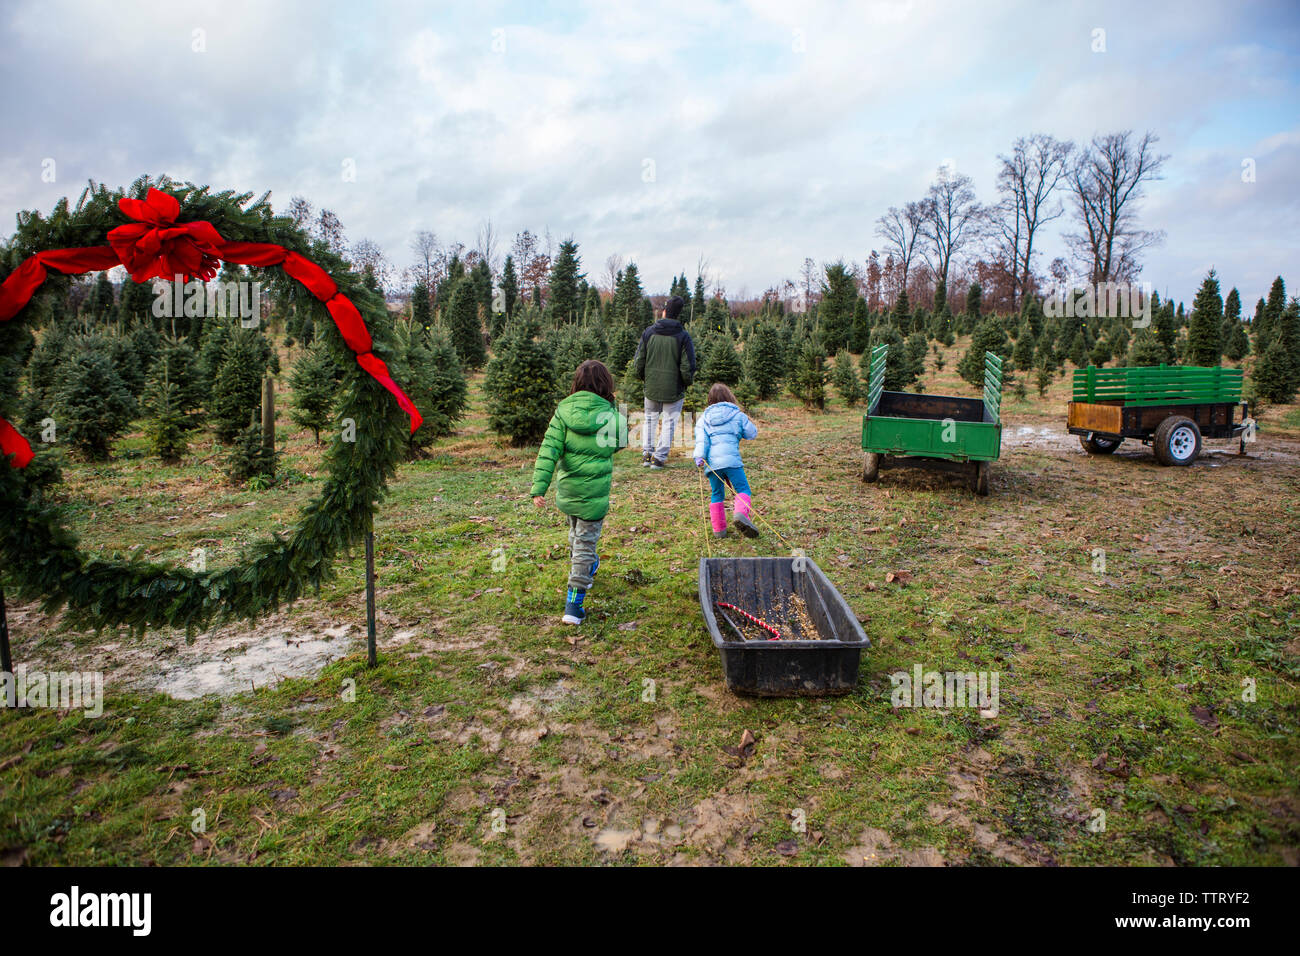 Rear view of family walking in pine tree farm against cloudy sky - Stock Image